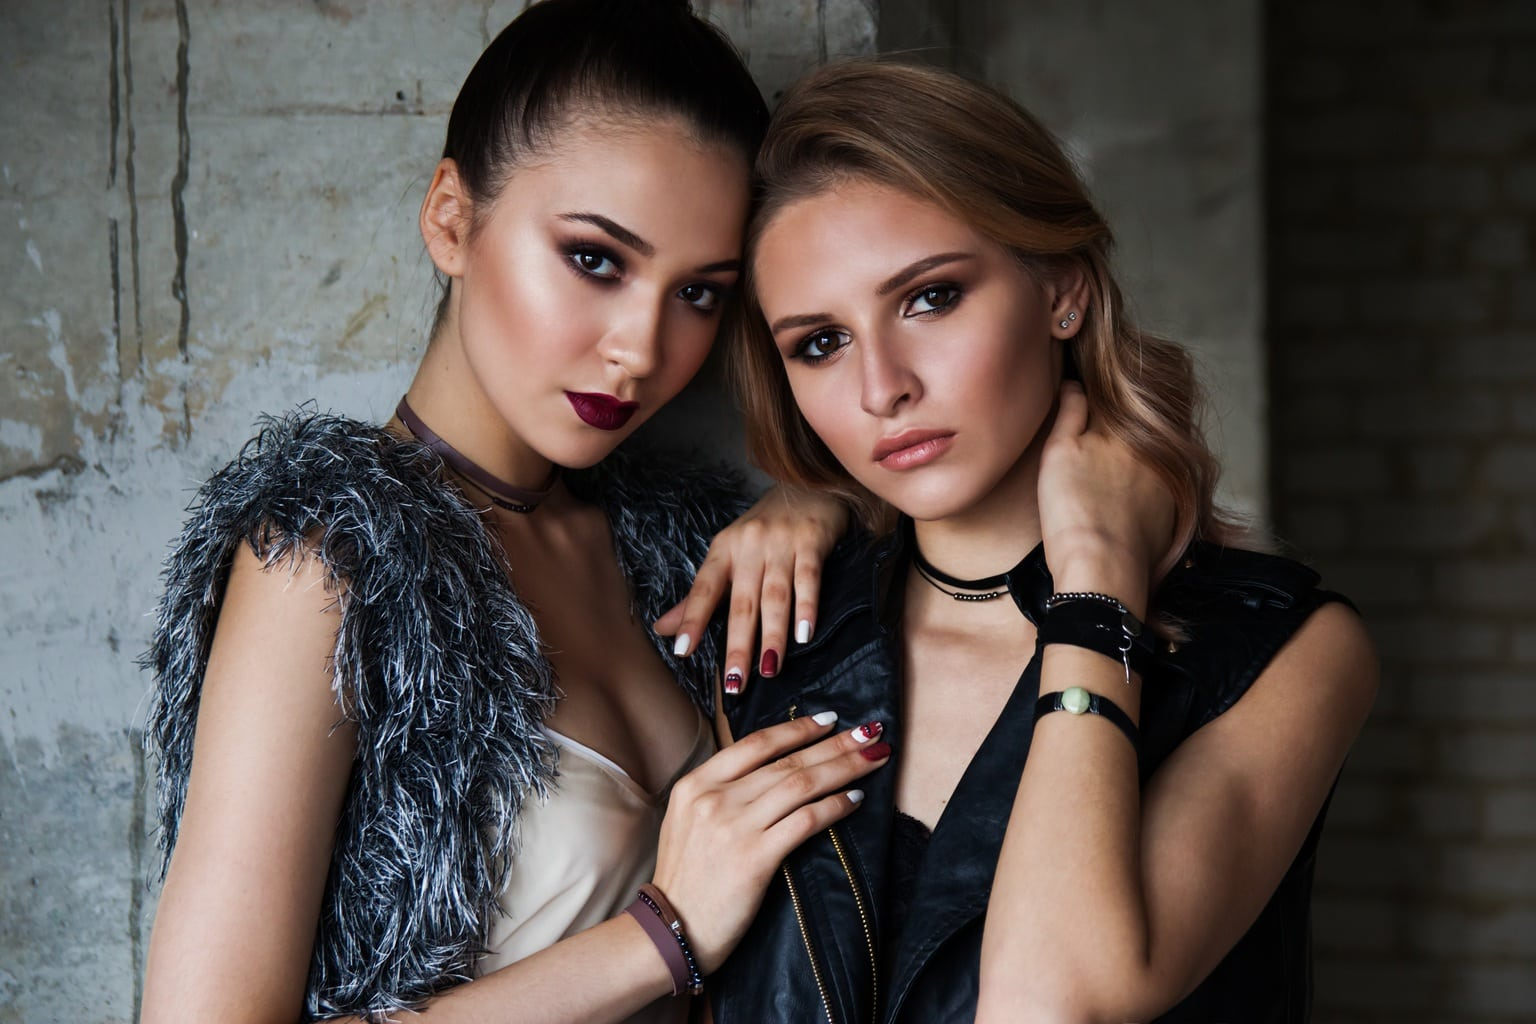 Close-up shot of two women wearing edgy outfits